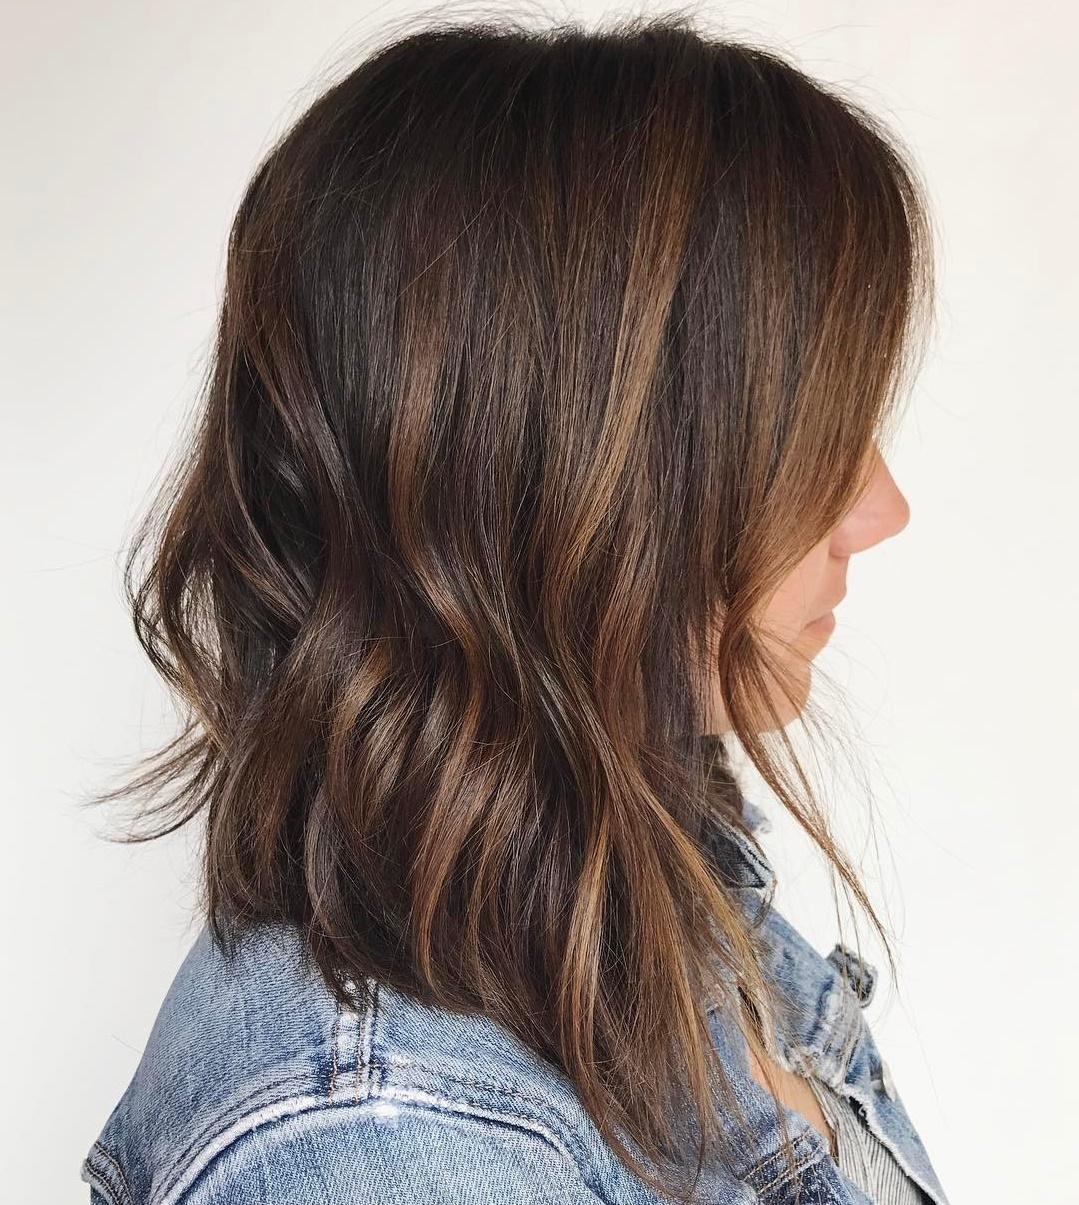 20 Ways To Make A Long Inverted Bob All Your Own Crazyforus